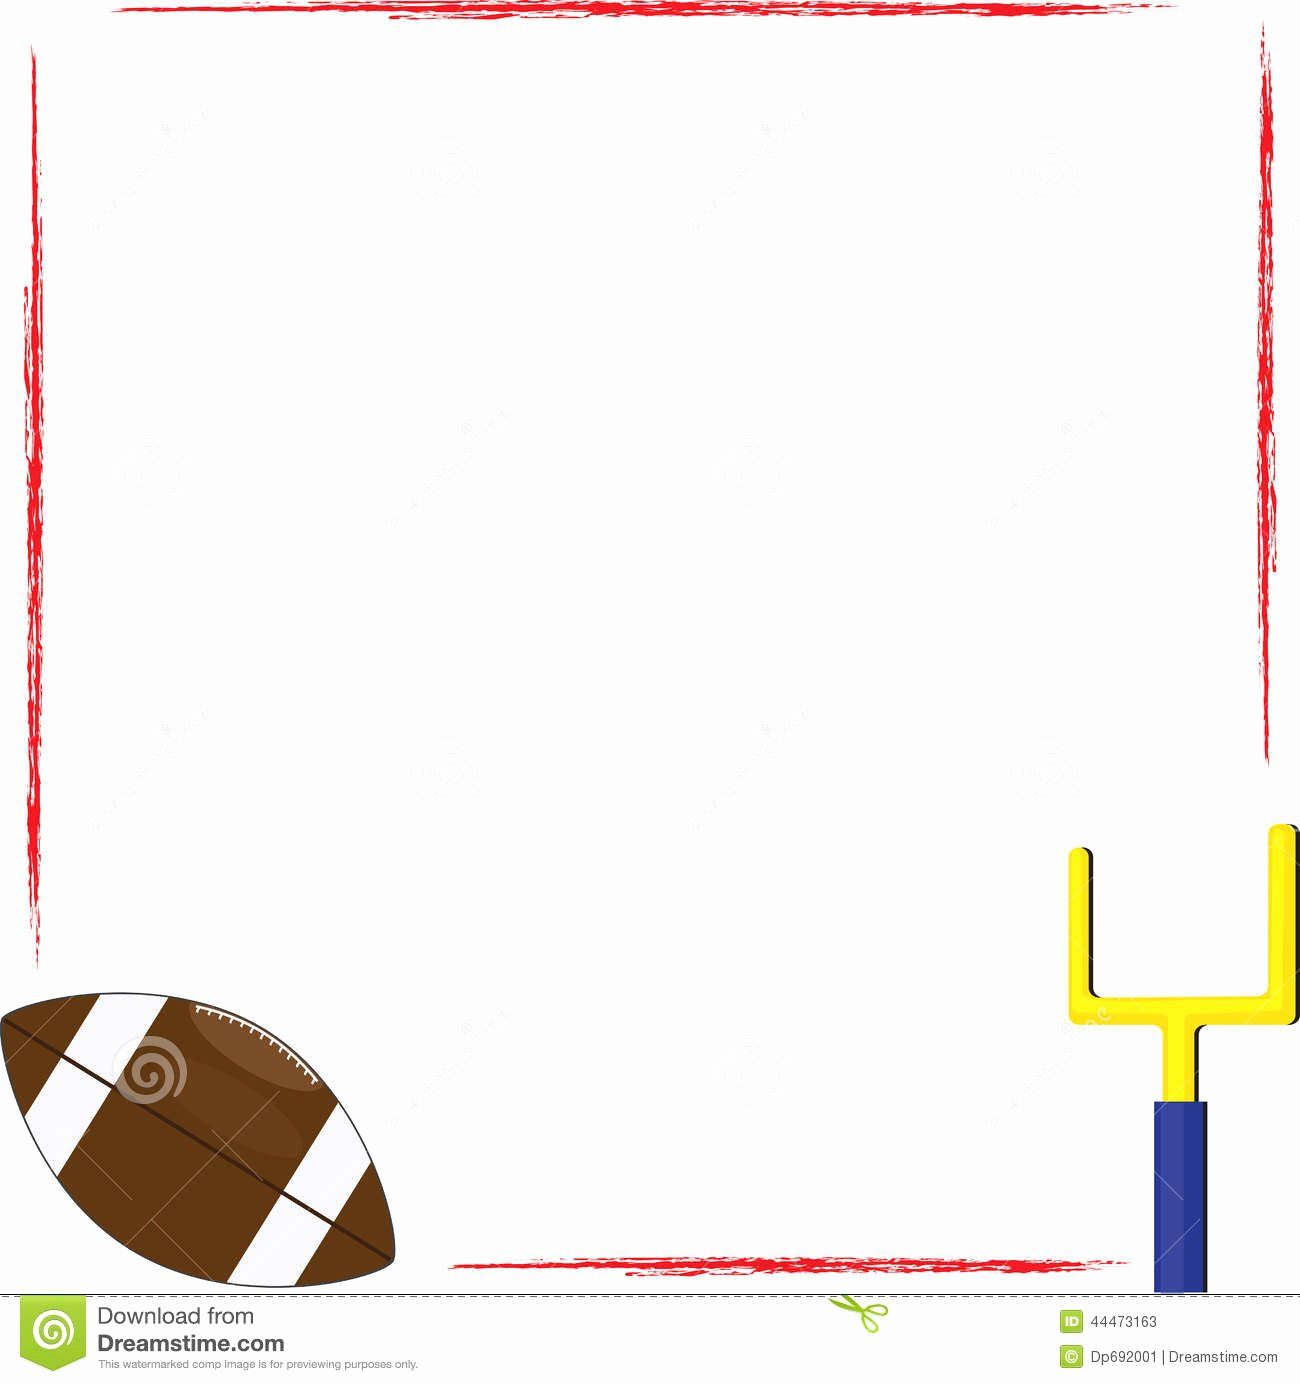 Free Football Border Template New Football Border Clipart & Free Clip Art